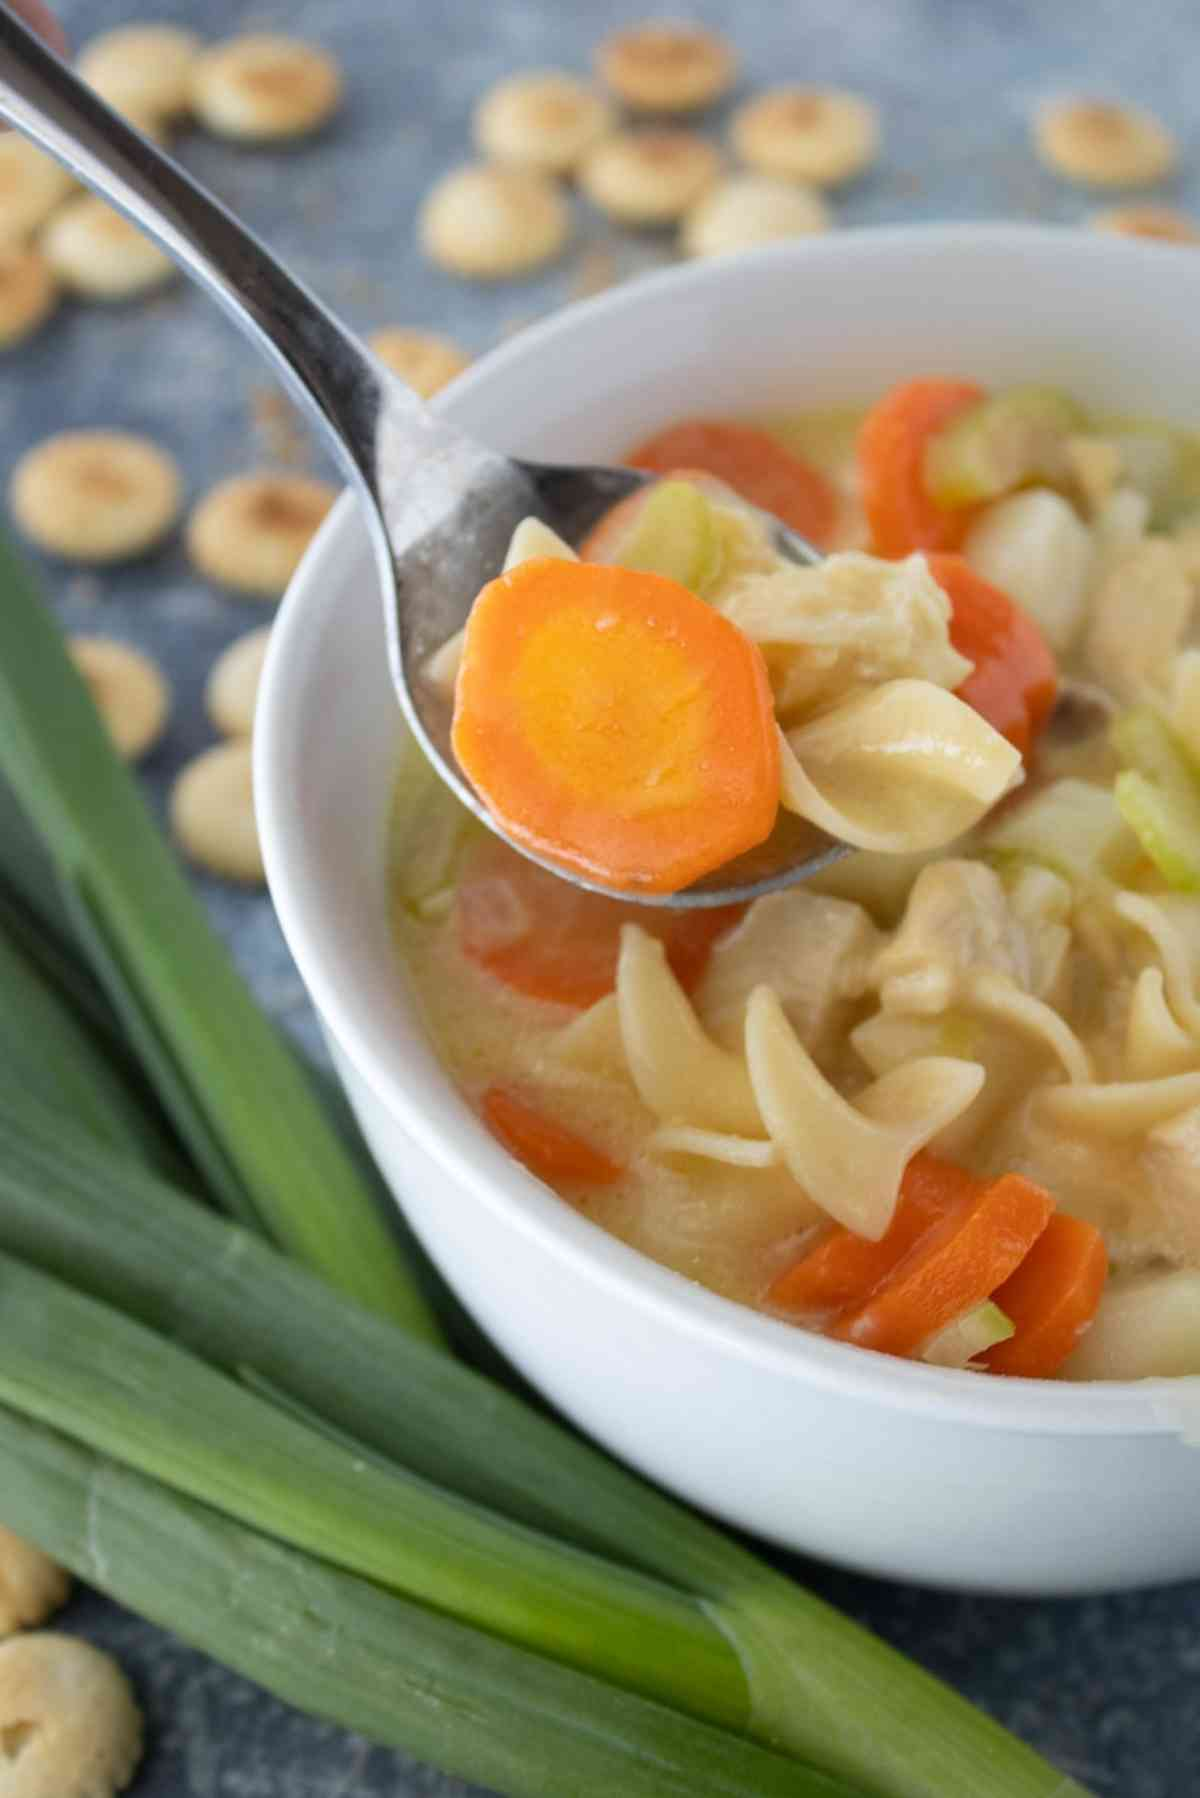 A spoonful of creamy chicken noodle soup being lifted out of the bowl.